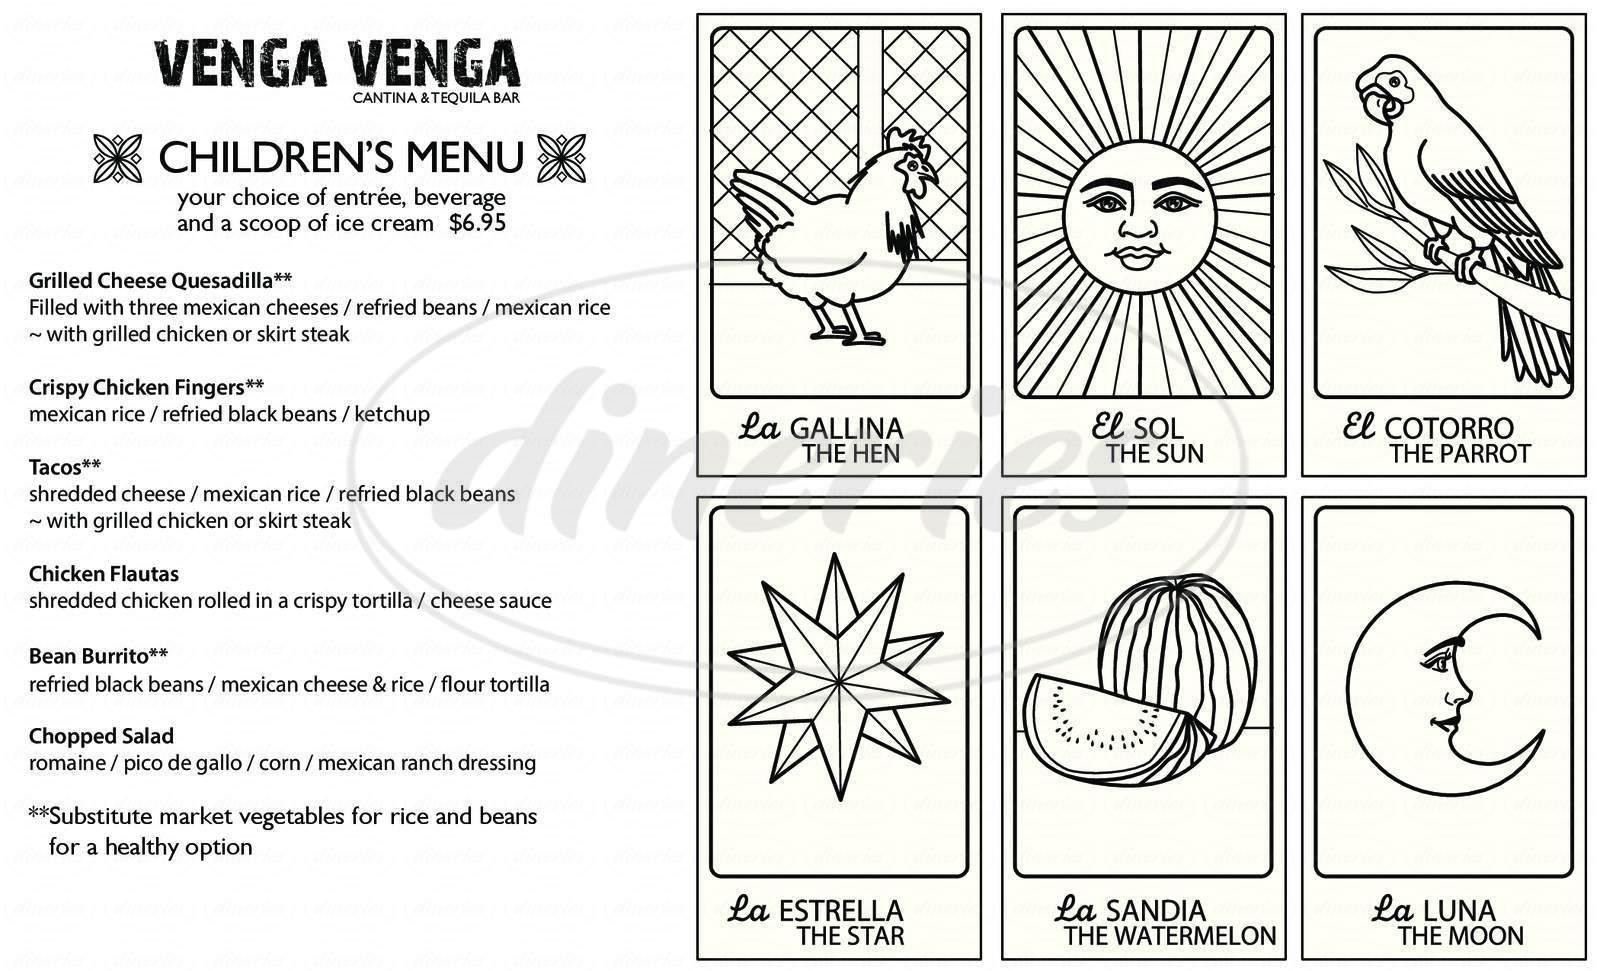 menu for Venga Venga Cantina and Tequila Bar